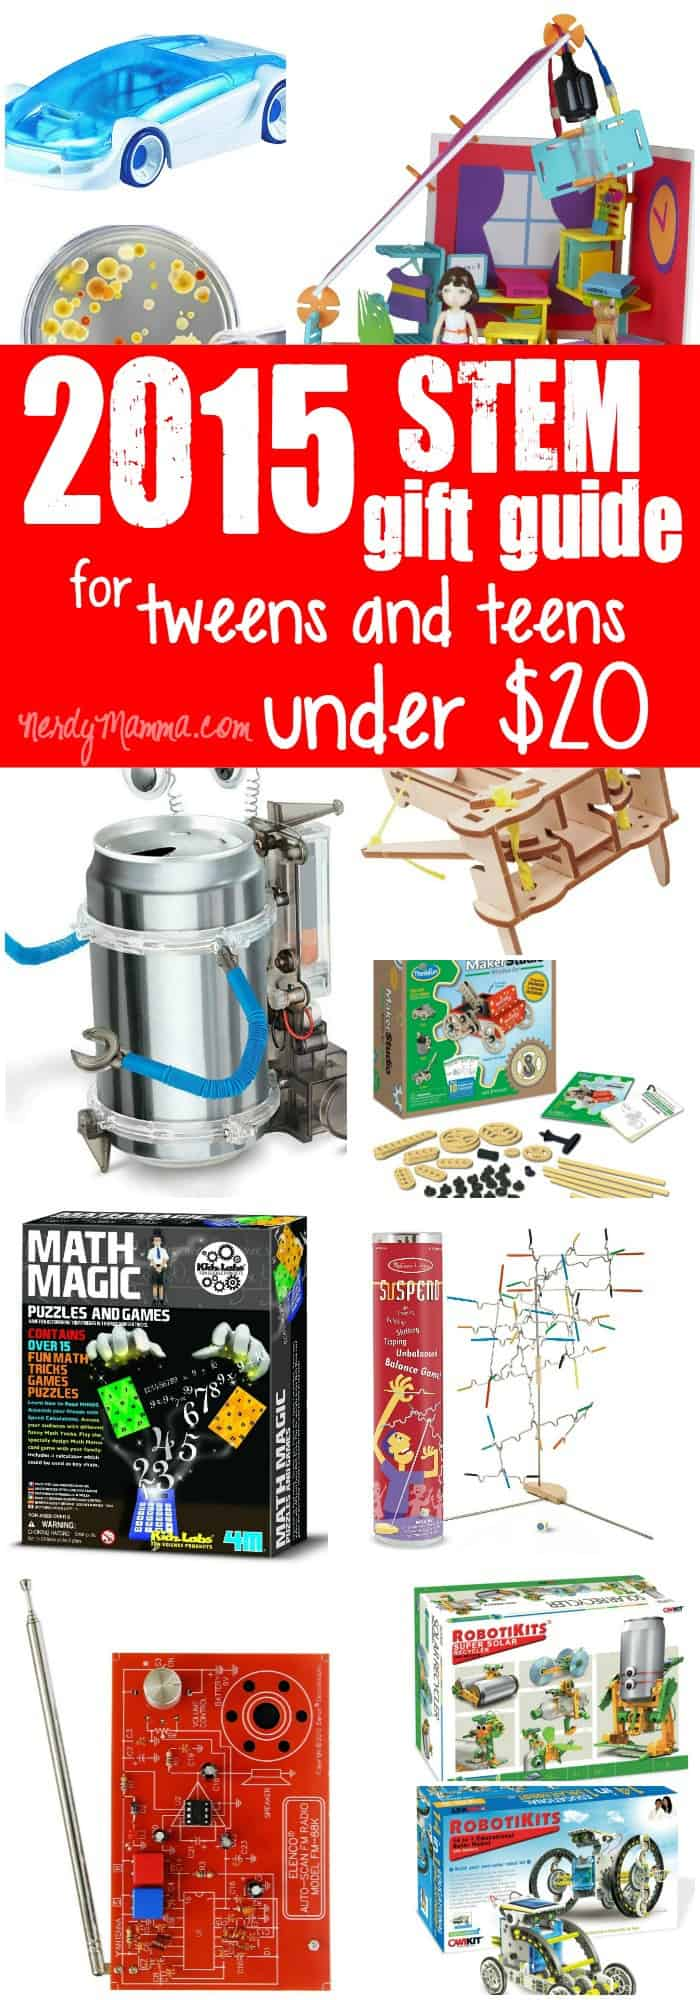 This is an awesome gift guide for tweens and teens that totally focuses on STEM (STEAM) gift ideas that are so affordable--everything is under $20!